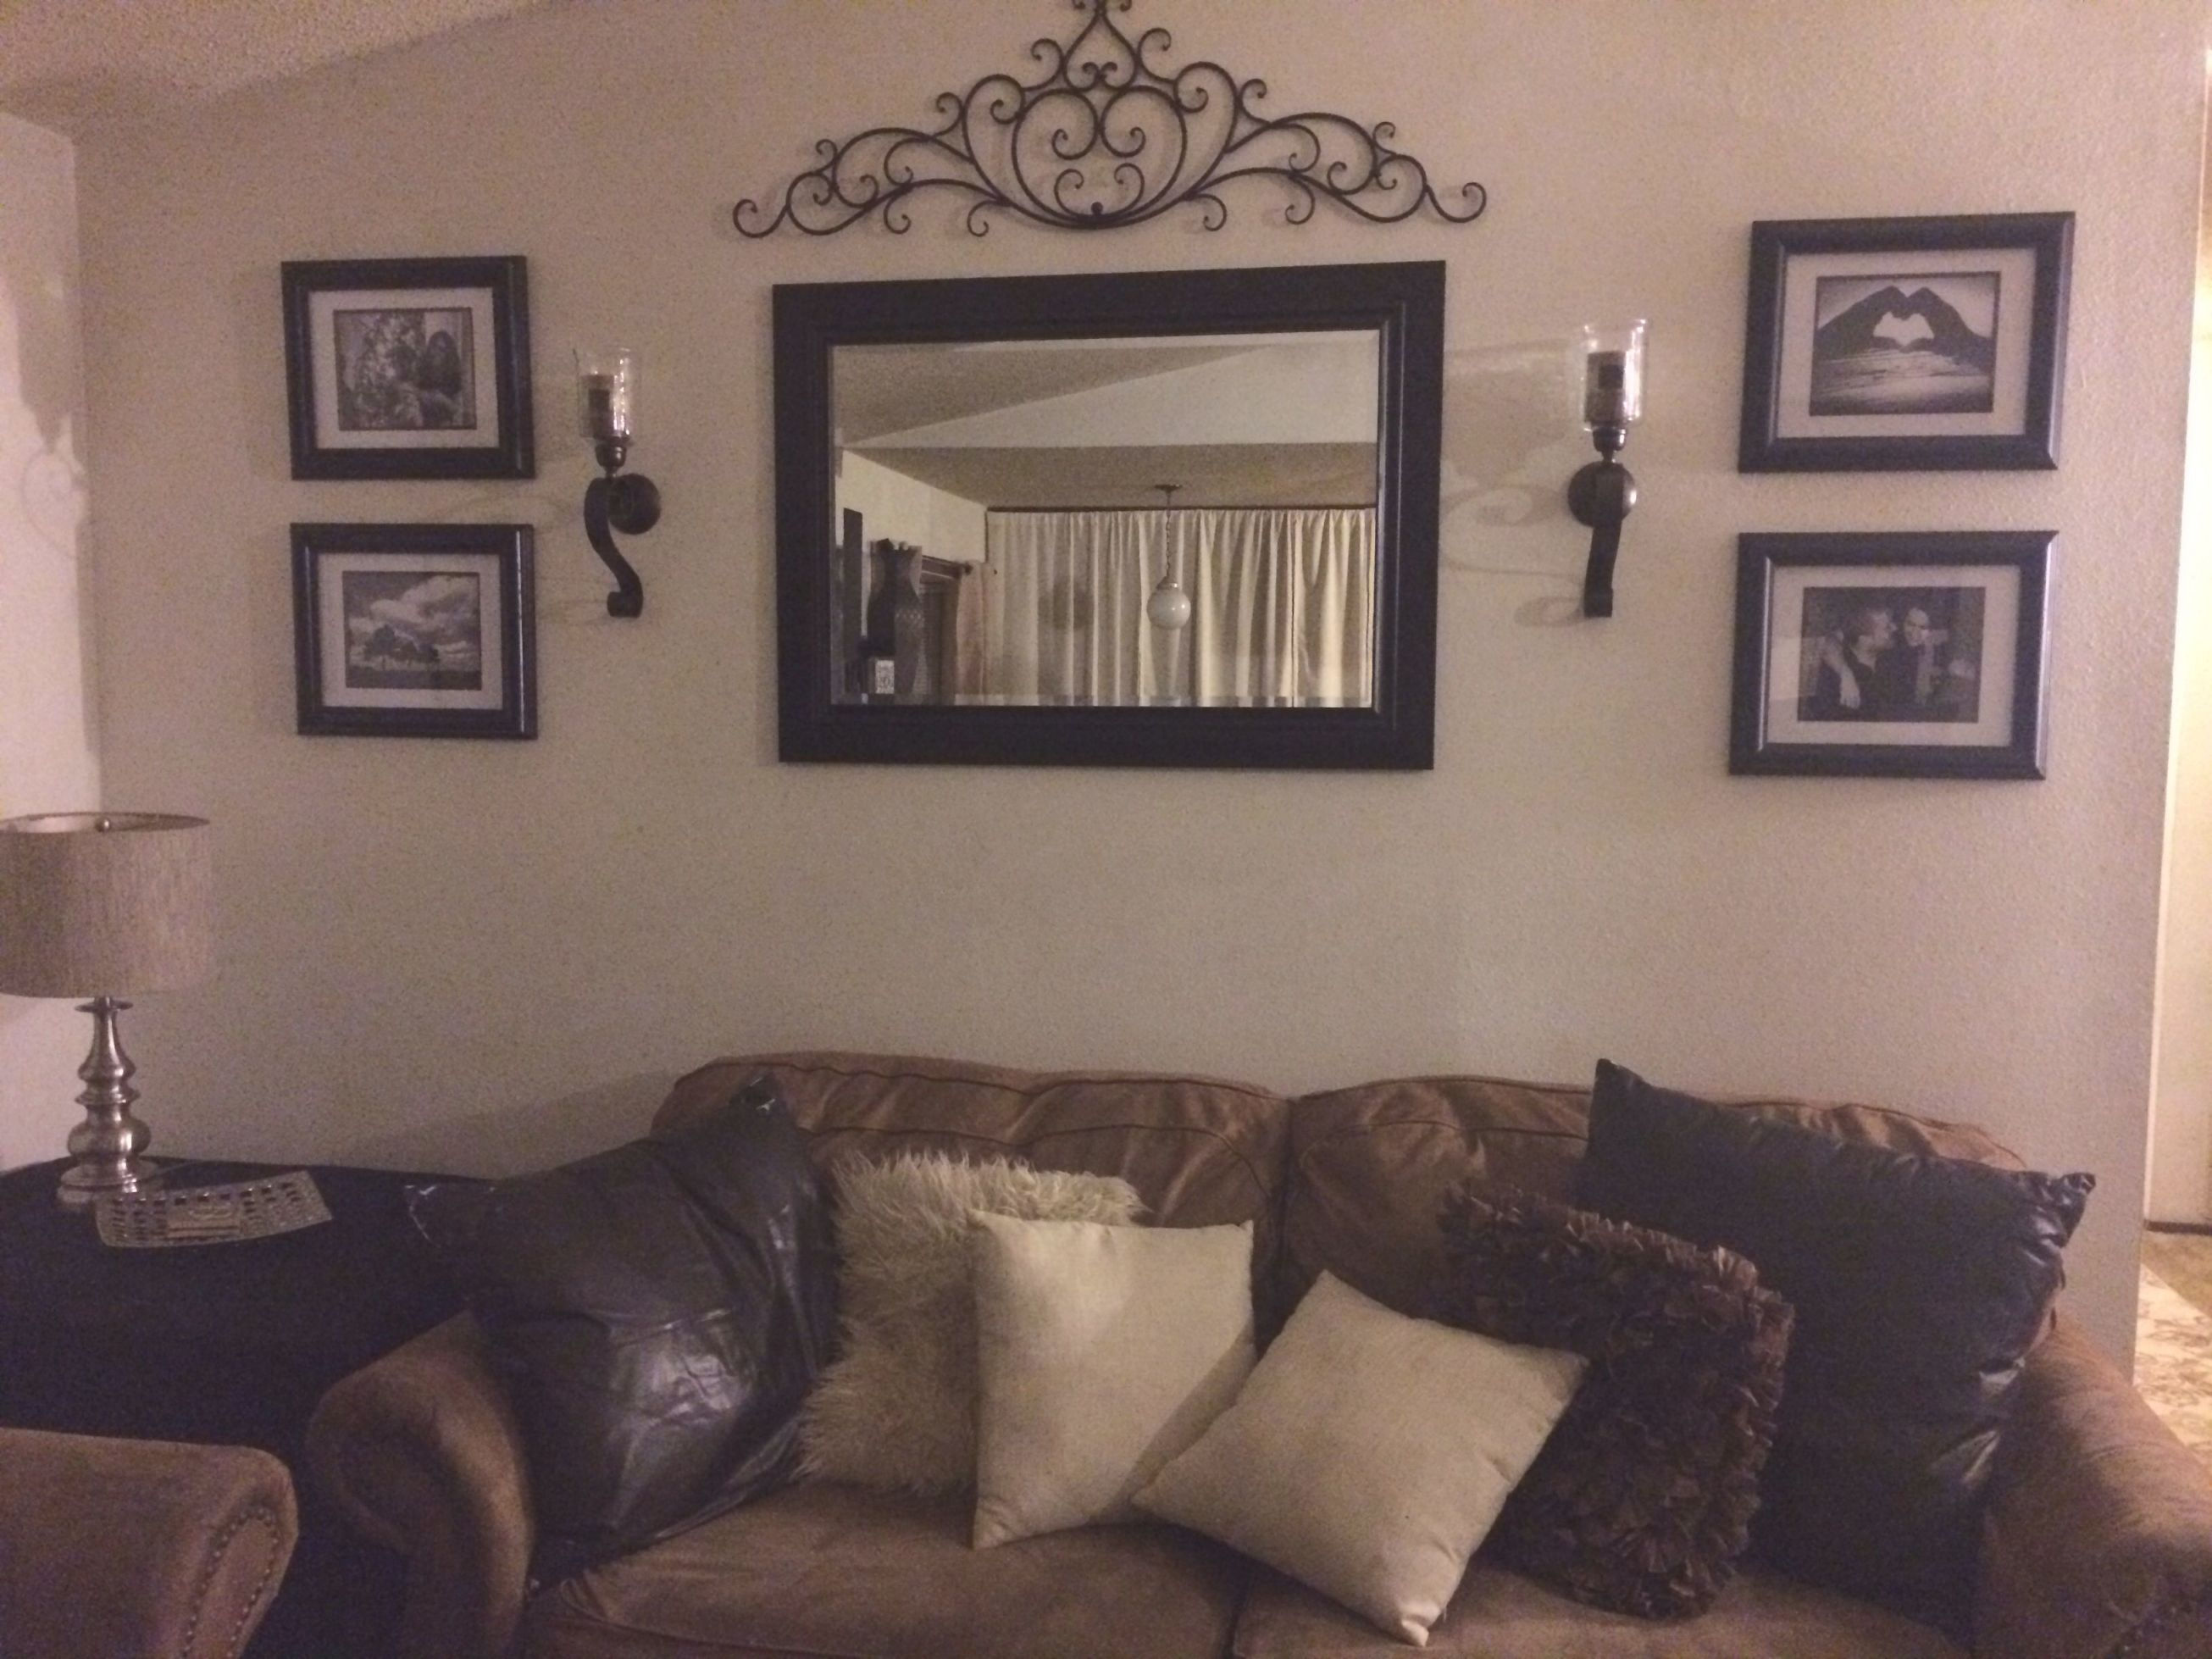 Behind Couch Wall In Living Room Mirror, Frame, Sconces, And for Decorating Walls In Living Room